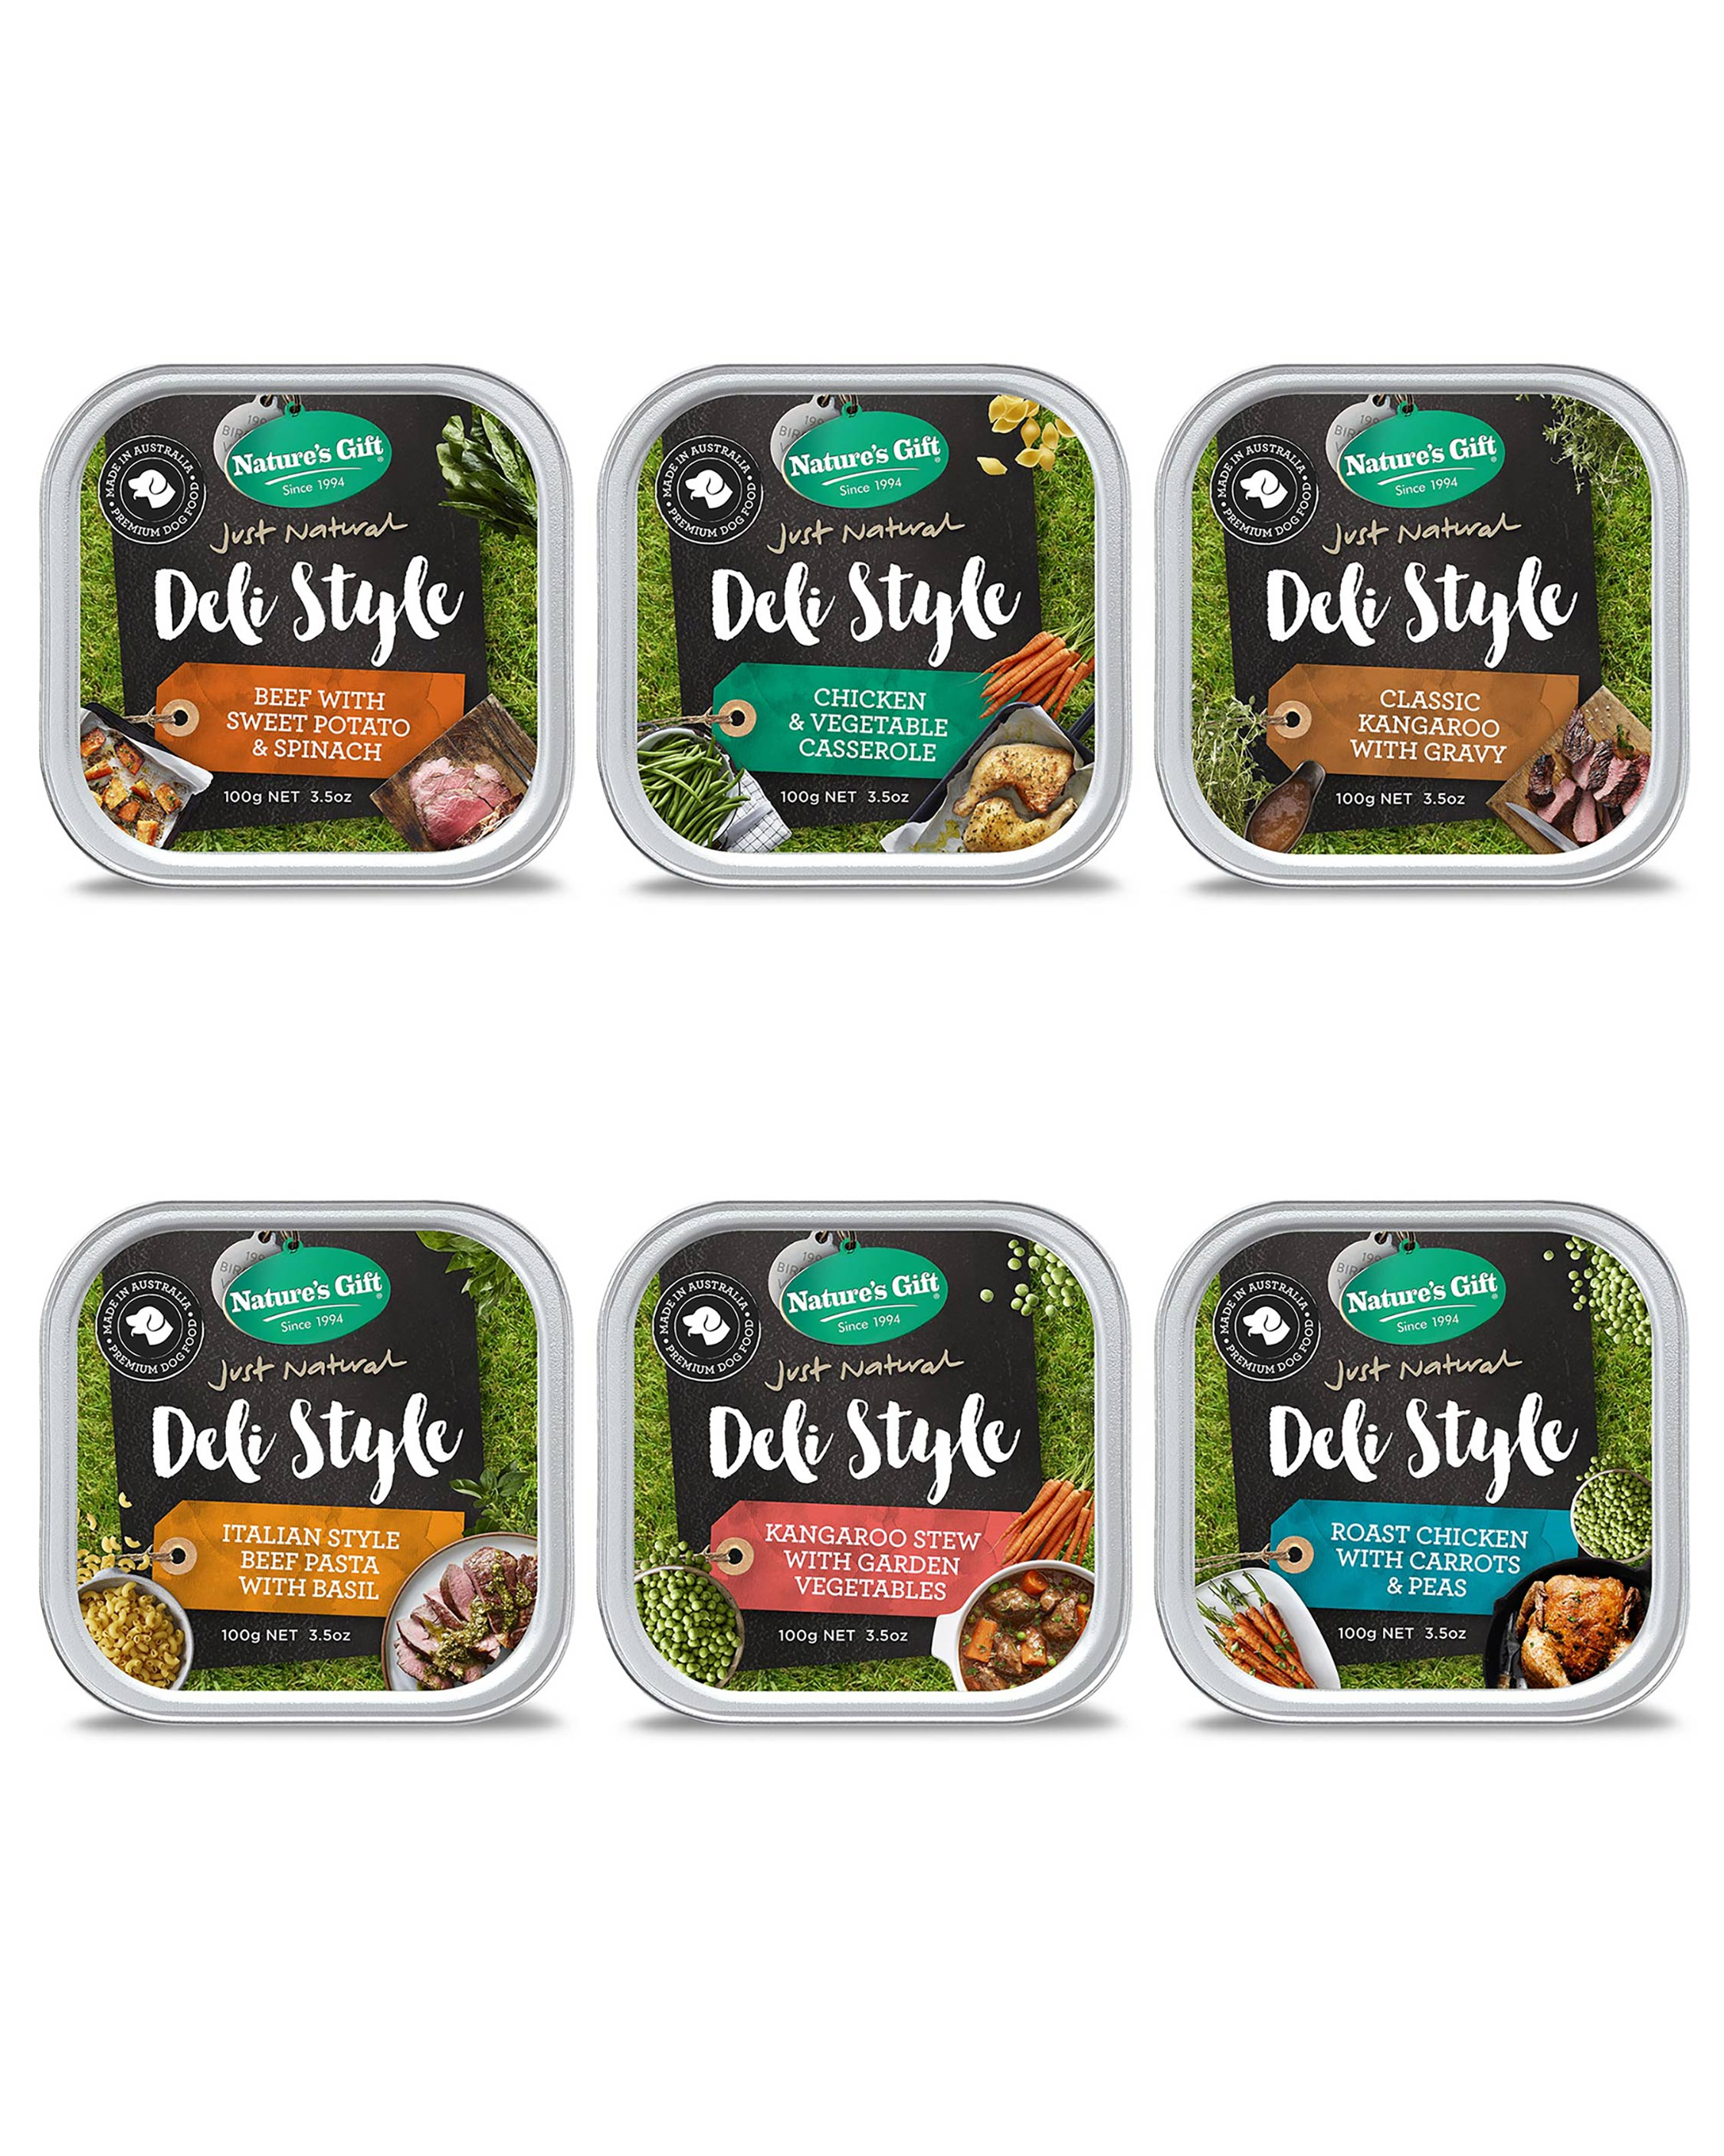 Natures Gift Deli Style Dog Food